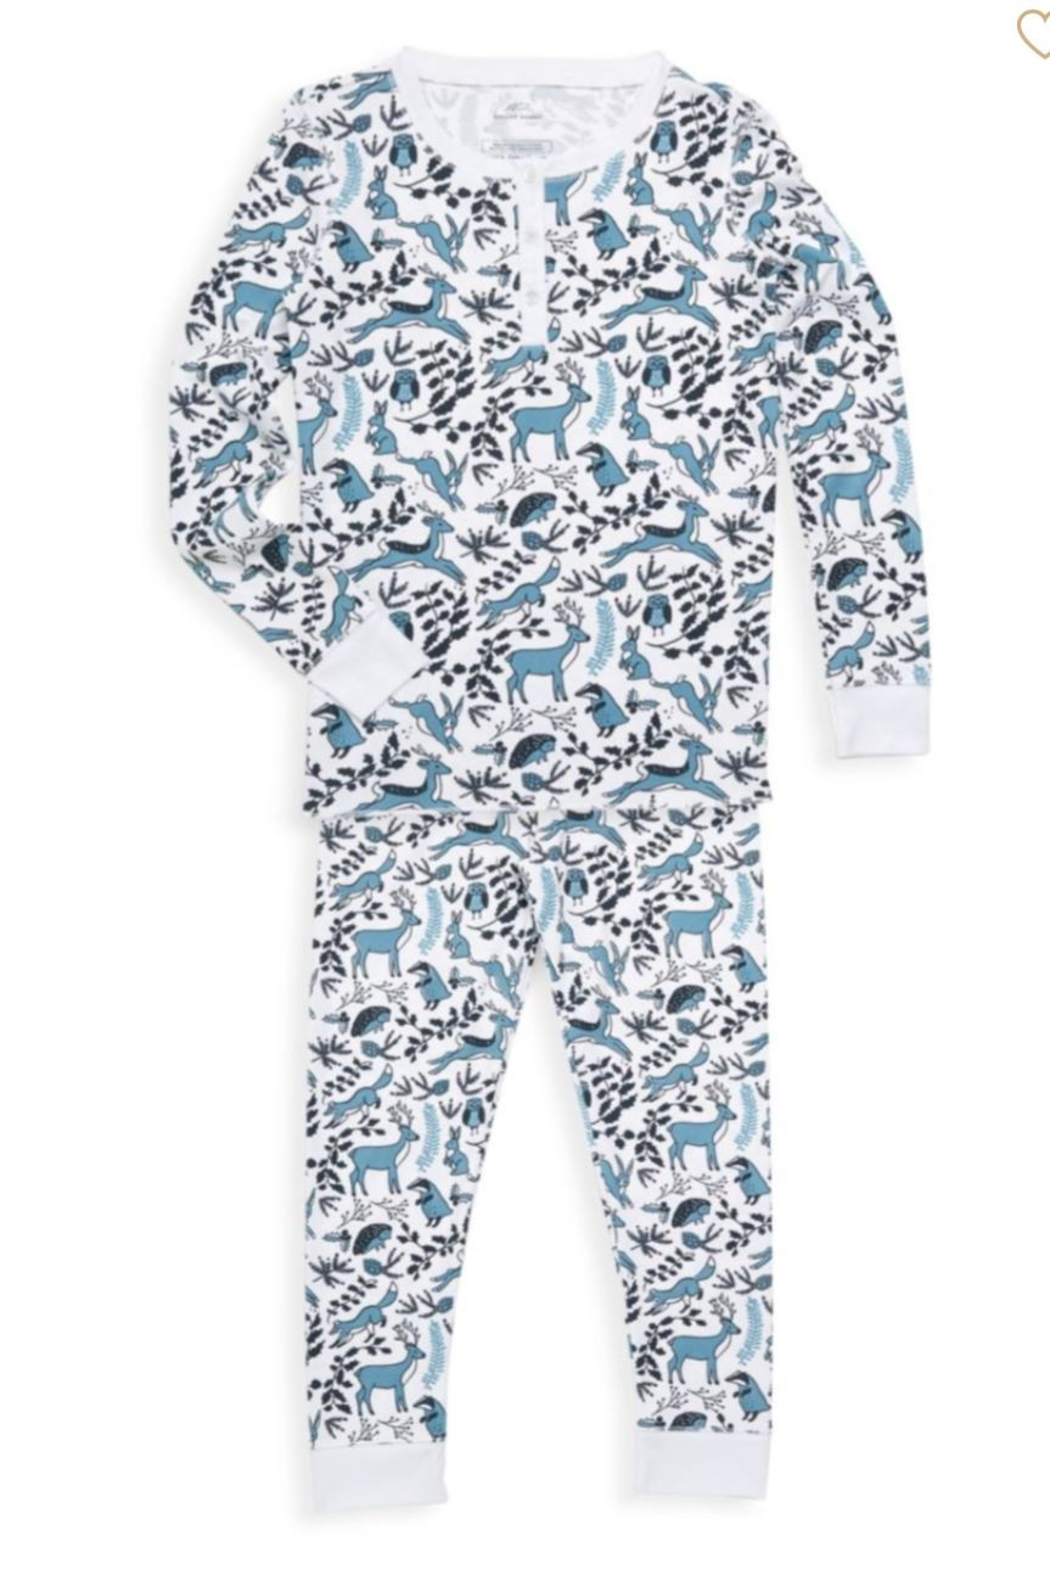 Roberta Roller Rabbit Winterland Pj Set-Kids - Main Image